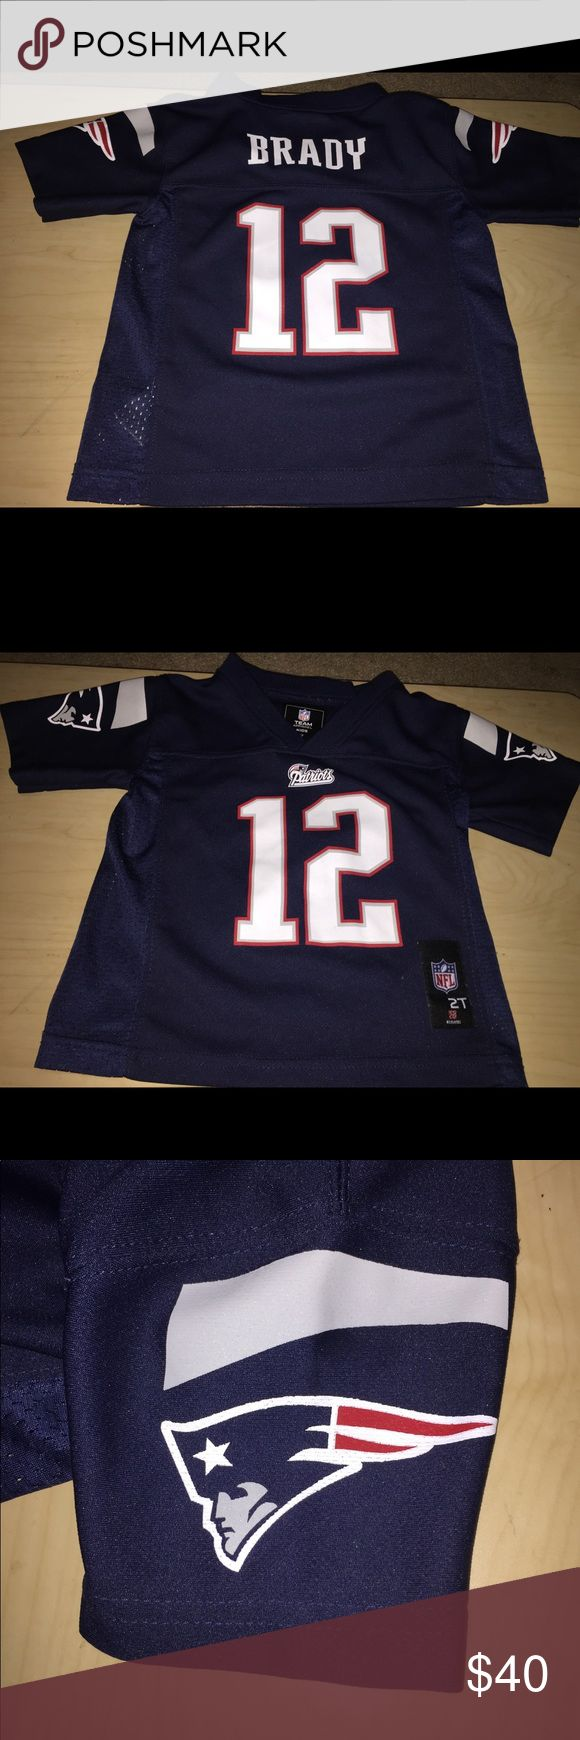 kids New England Patriots Tom Brady jersey 2t kids New England Patriots Tom Brady jersey size 2t. Good condition. Smoke free home nfl Shirts & Tops